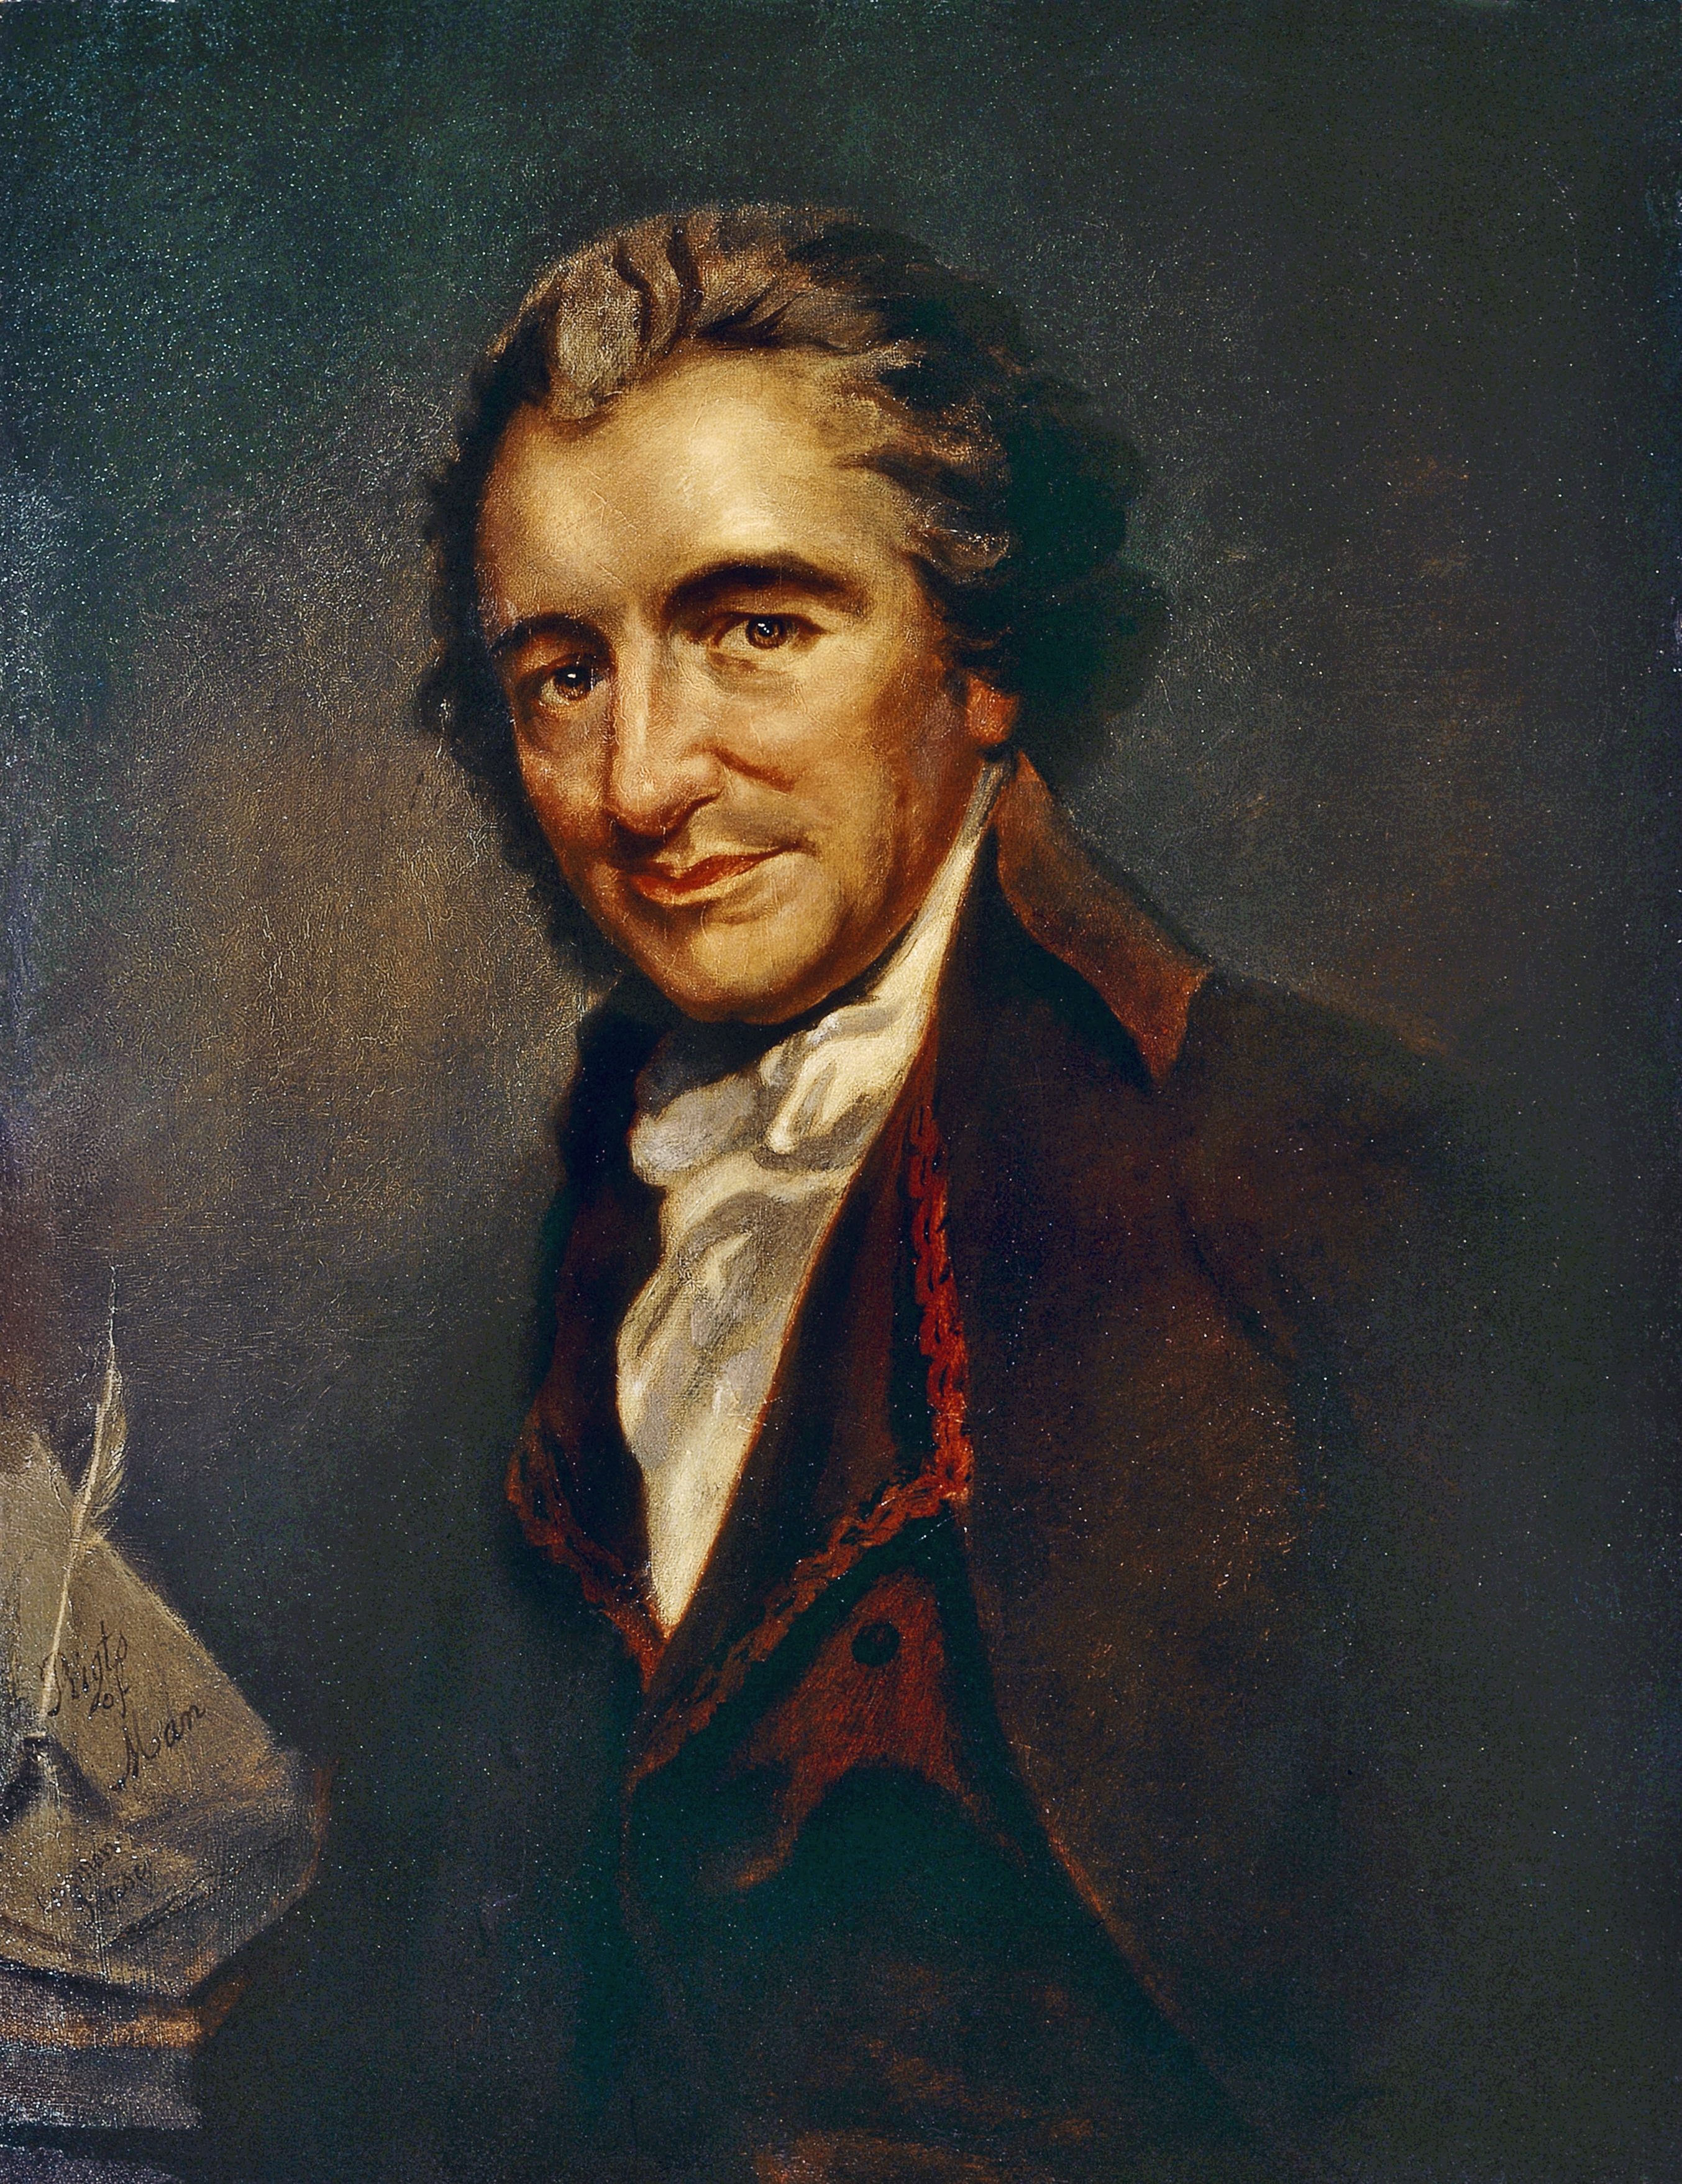 thomas paine essay prompt Weekly argument prompt the following passage is from rights of man , a book written by the pamphleteer thomas paine in 1791 born in england, paine was an intellectual, a revolutionary, and a supporter of american independence from england.